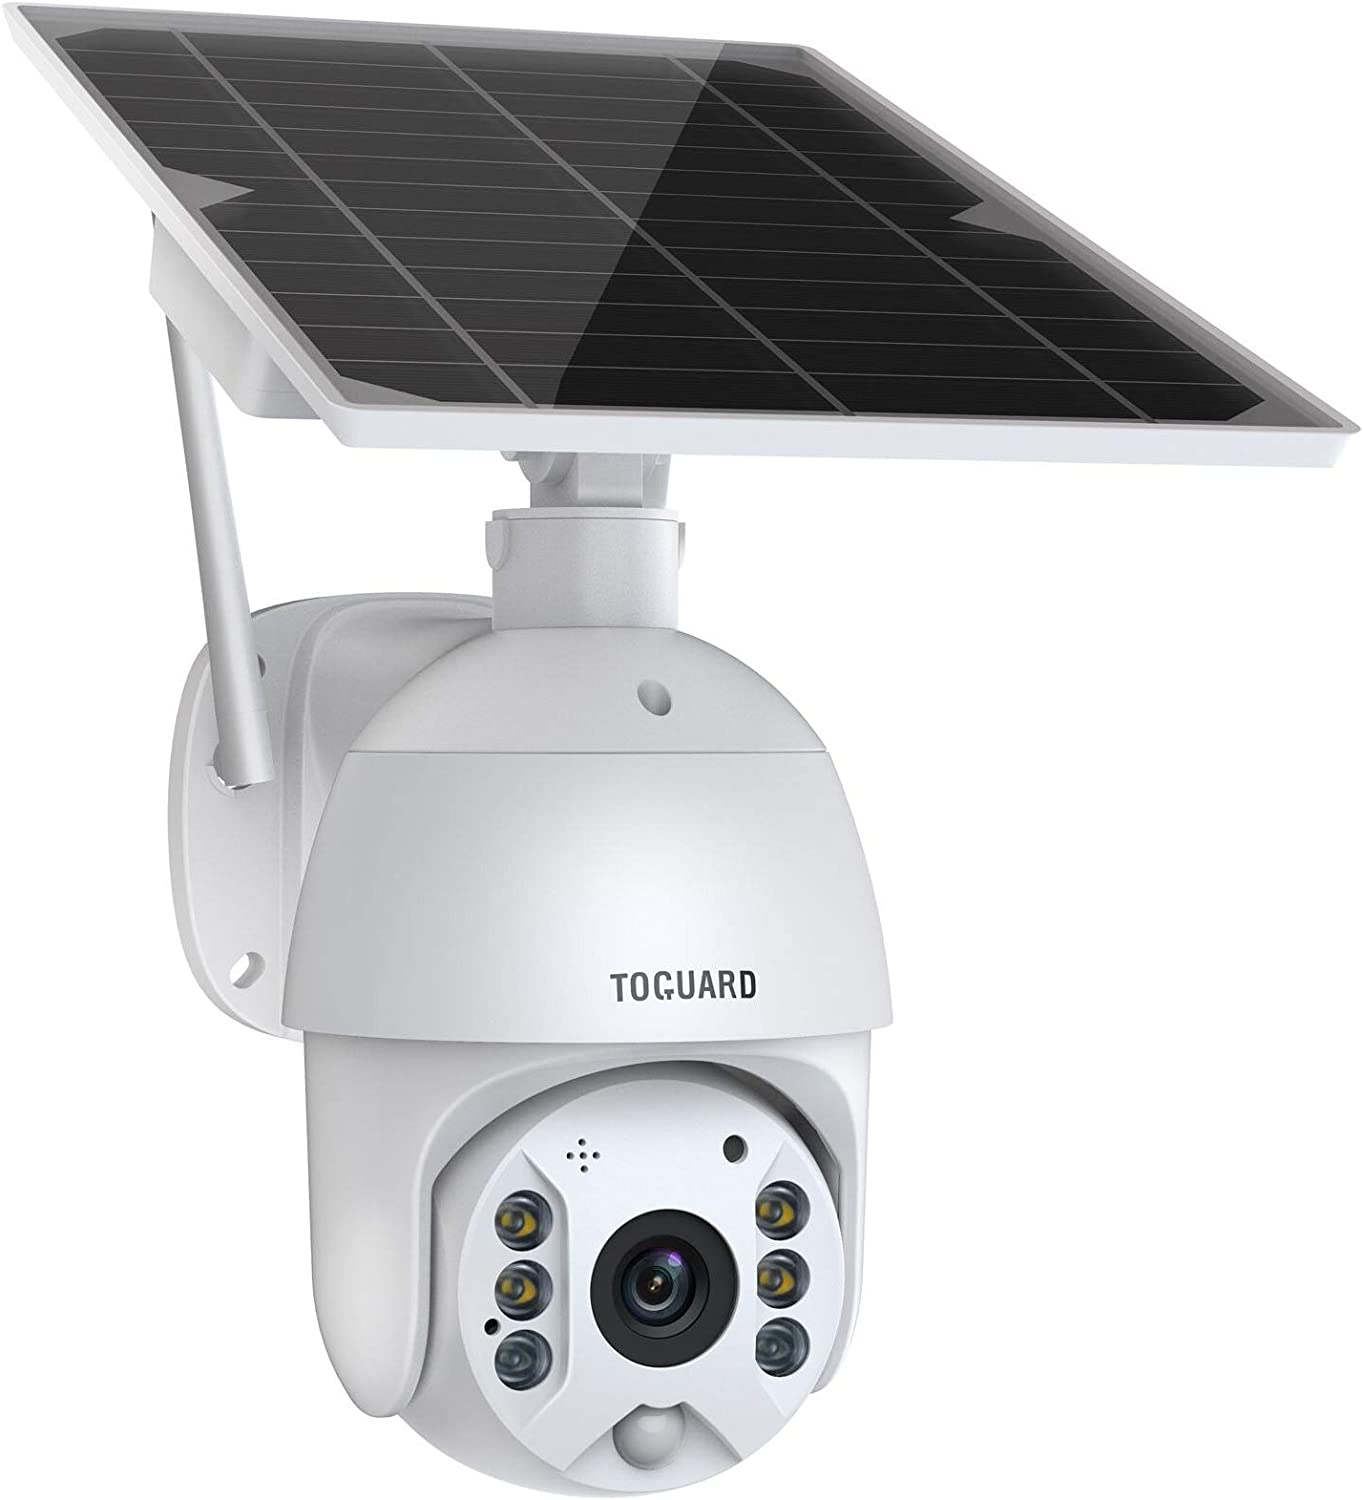 TOGUARD Wireless Security Camera Outdoor Solar Powered Battery PTZ Security Camera 1080P Waterproof IP Dome Cam with 2-Way Audio PIR Radar IP65 Full-Color Night Vision Motion Detection